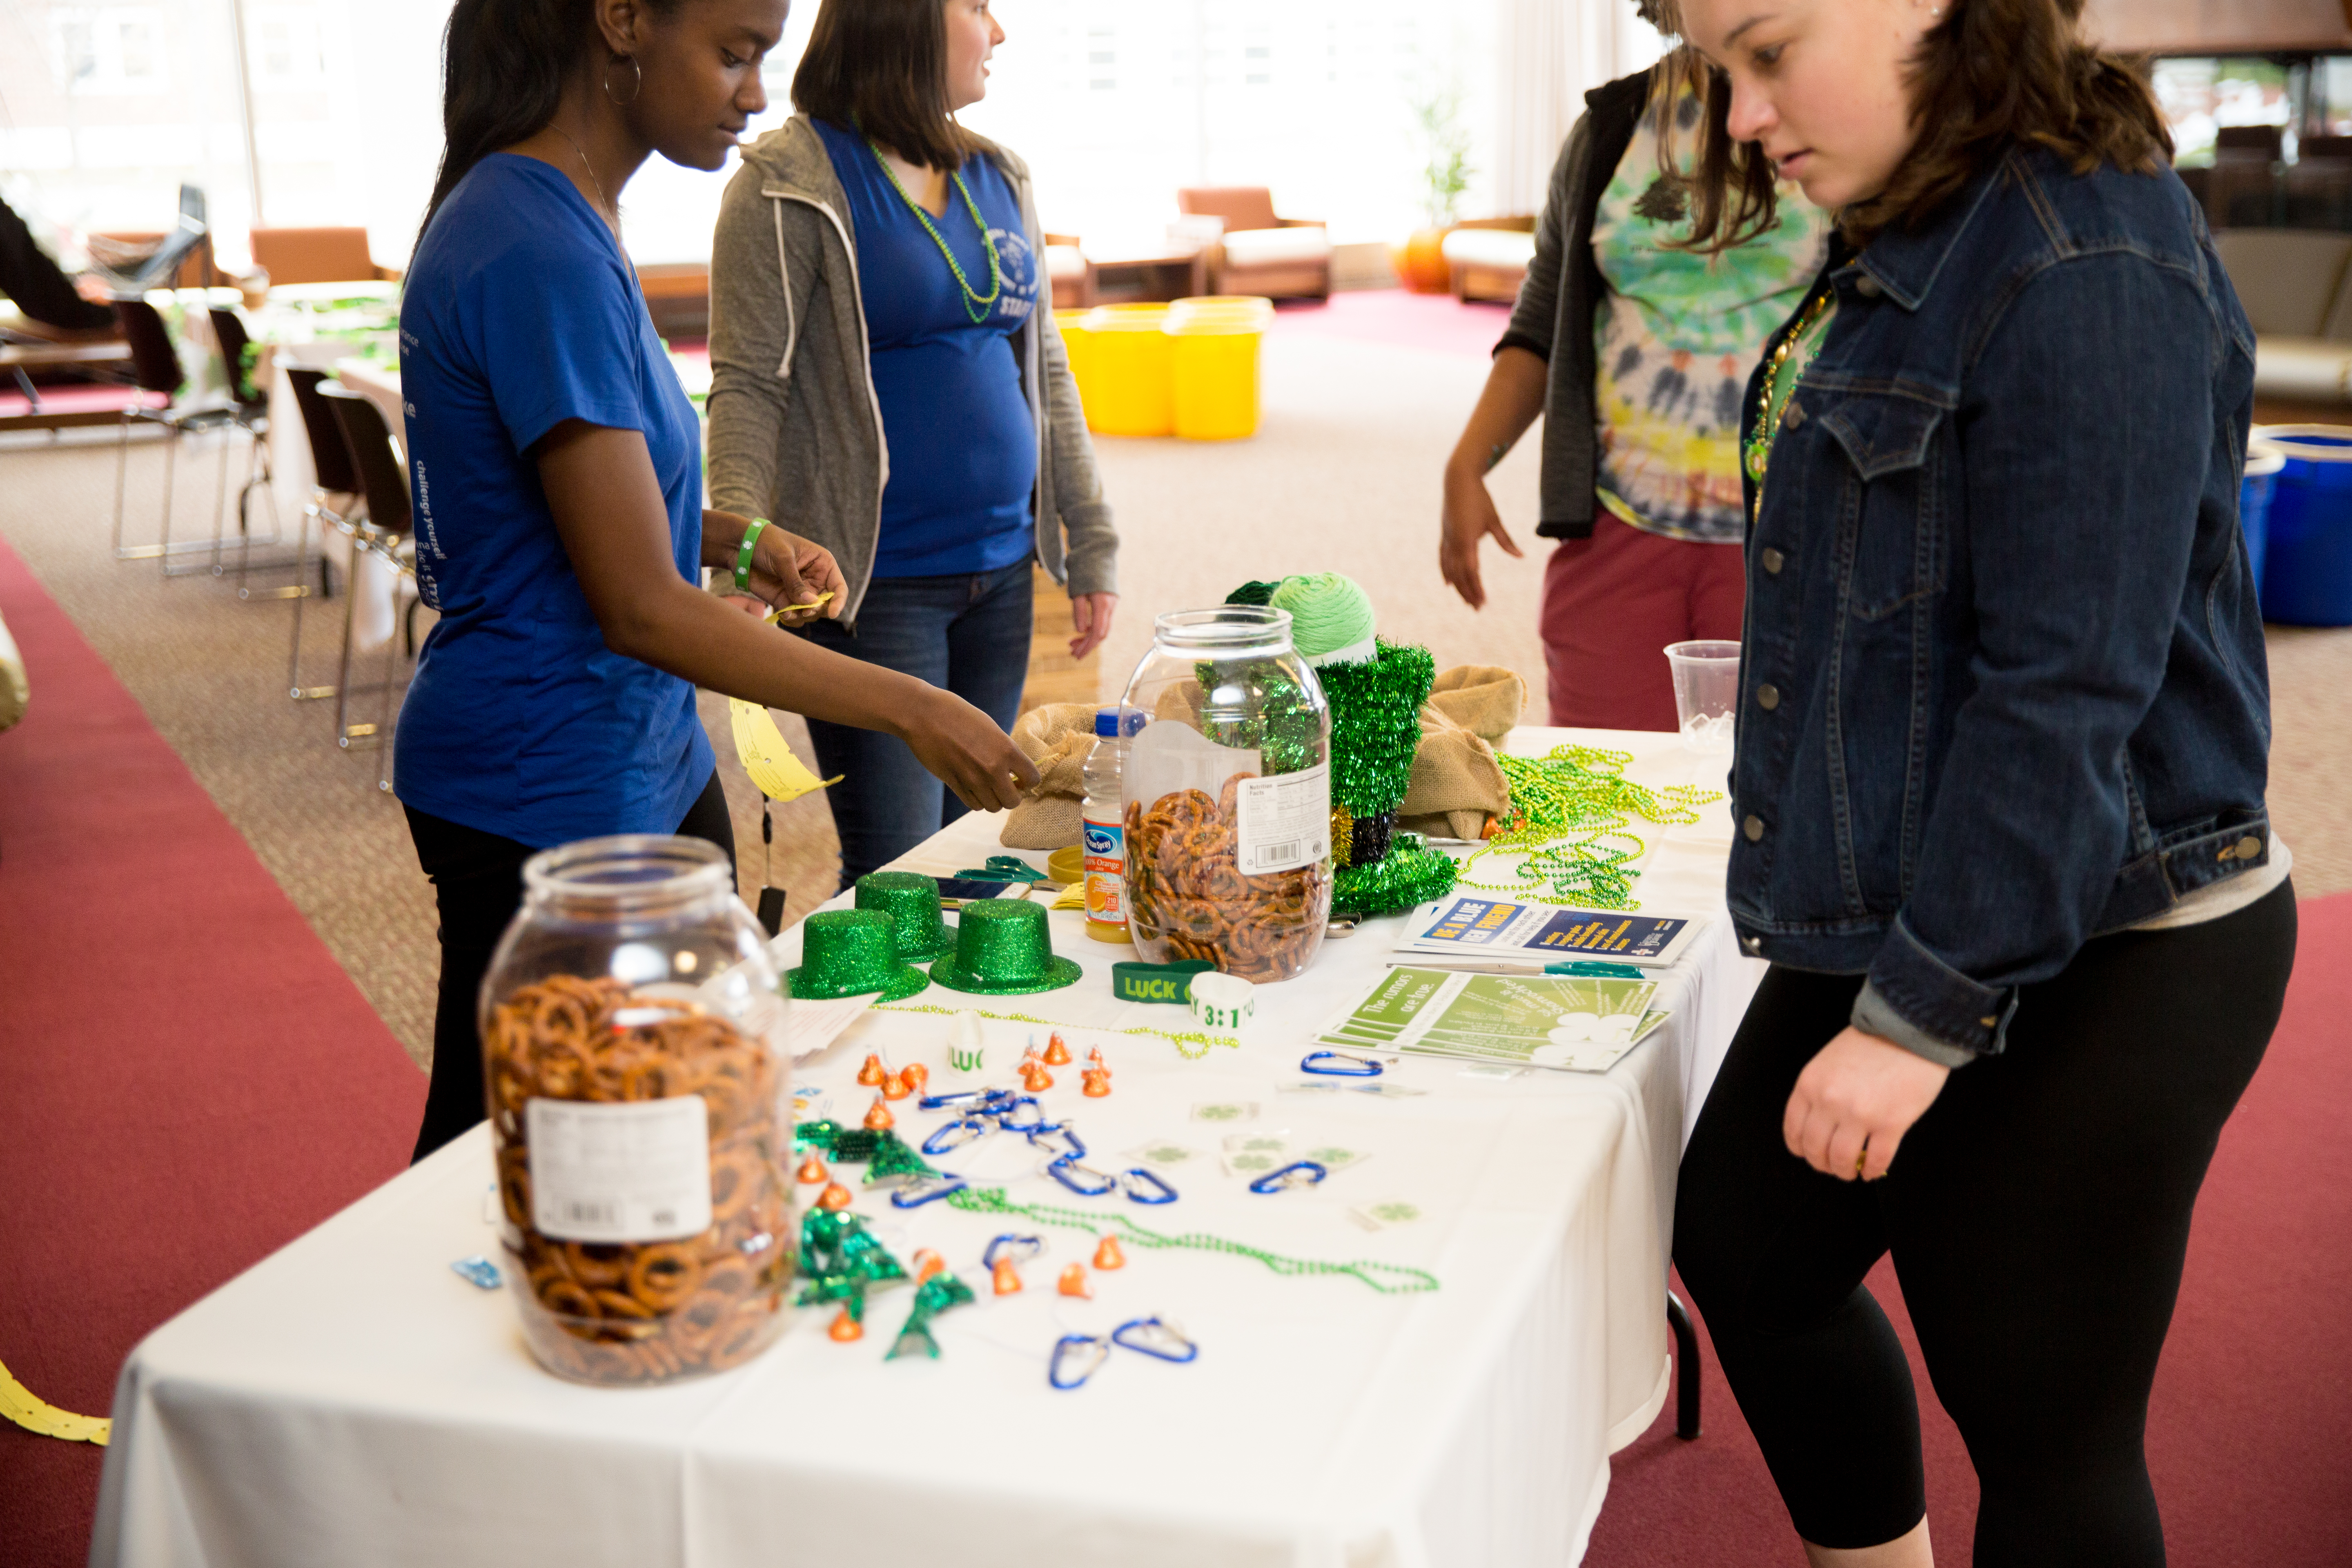 Healthy HENS students giving away pretzels and Shamrock Fest toys